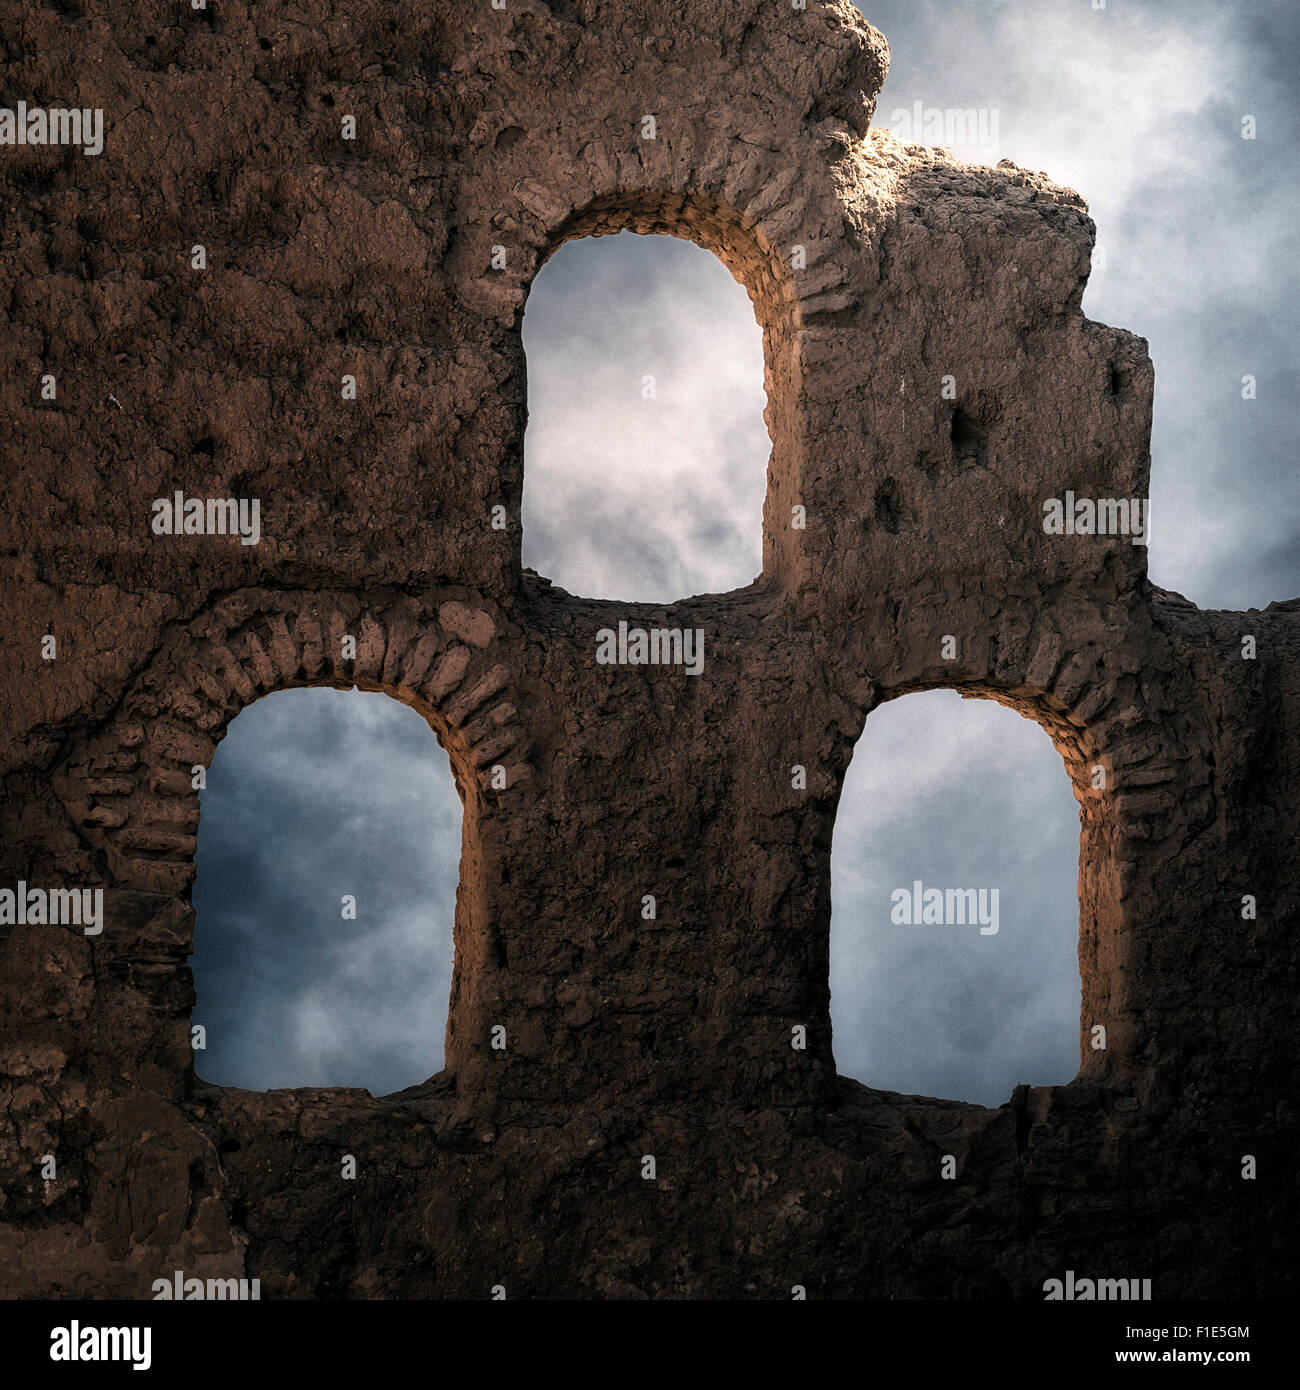 three windows in an old stone wall - Stock Image